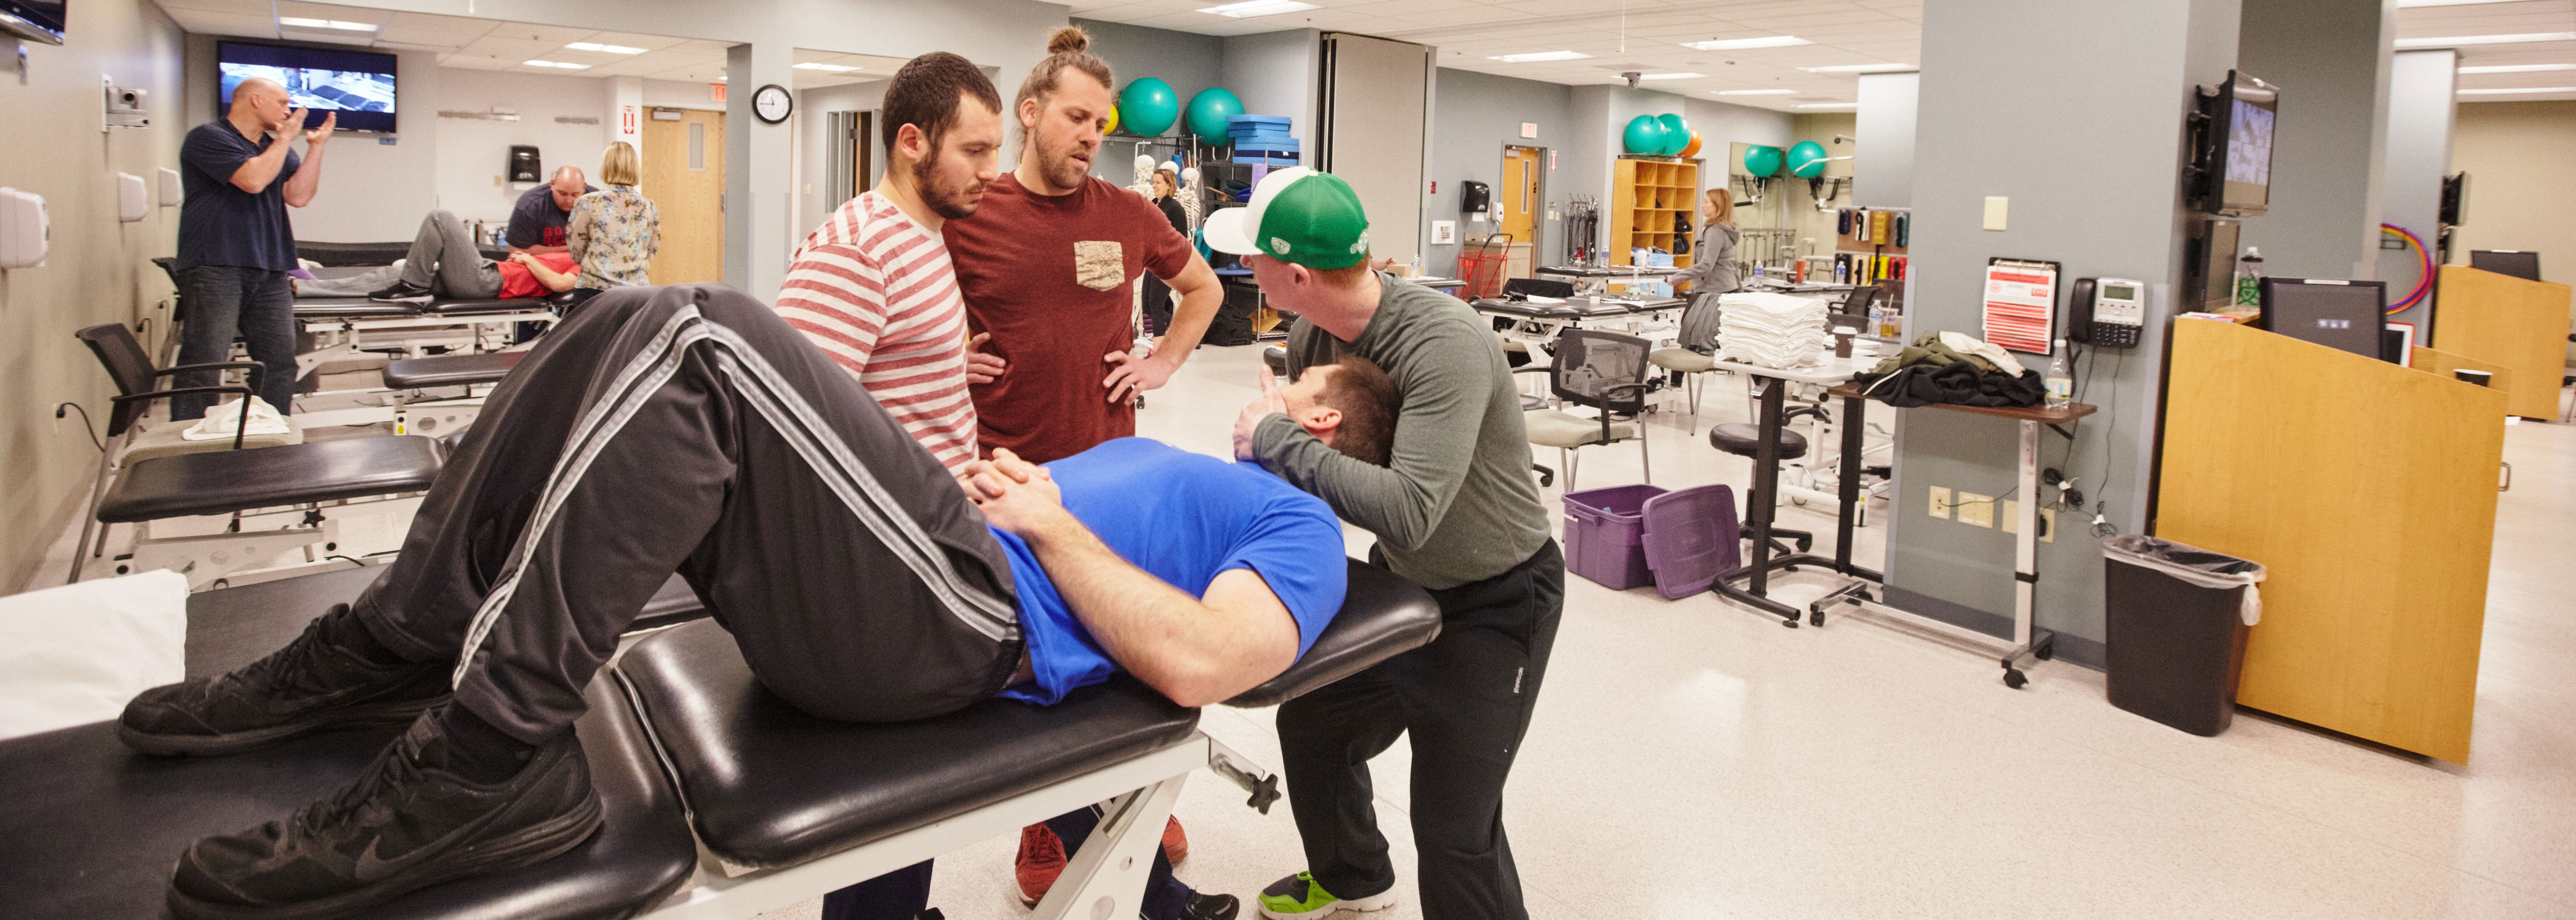 Boston University | Orthopaedic Manual Physical Therapy Fellowship Goals |  Fellowship in Orthopaedic Manual Physical Therapy